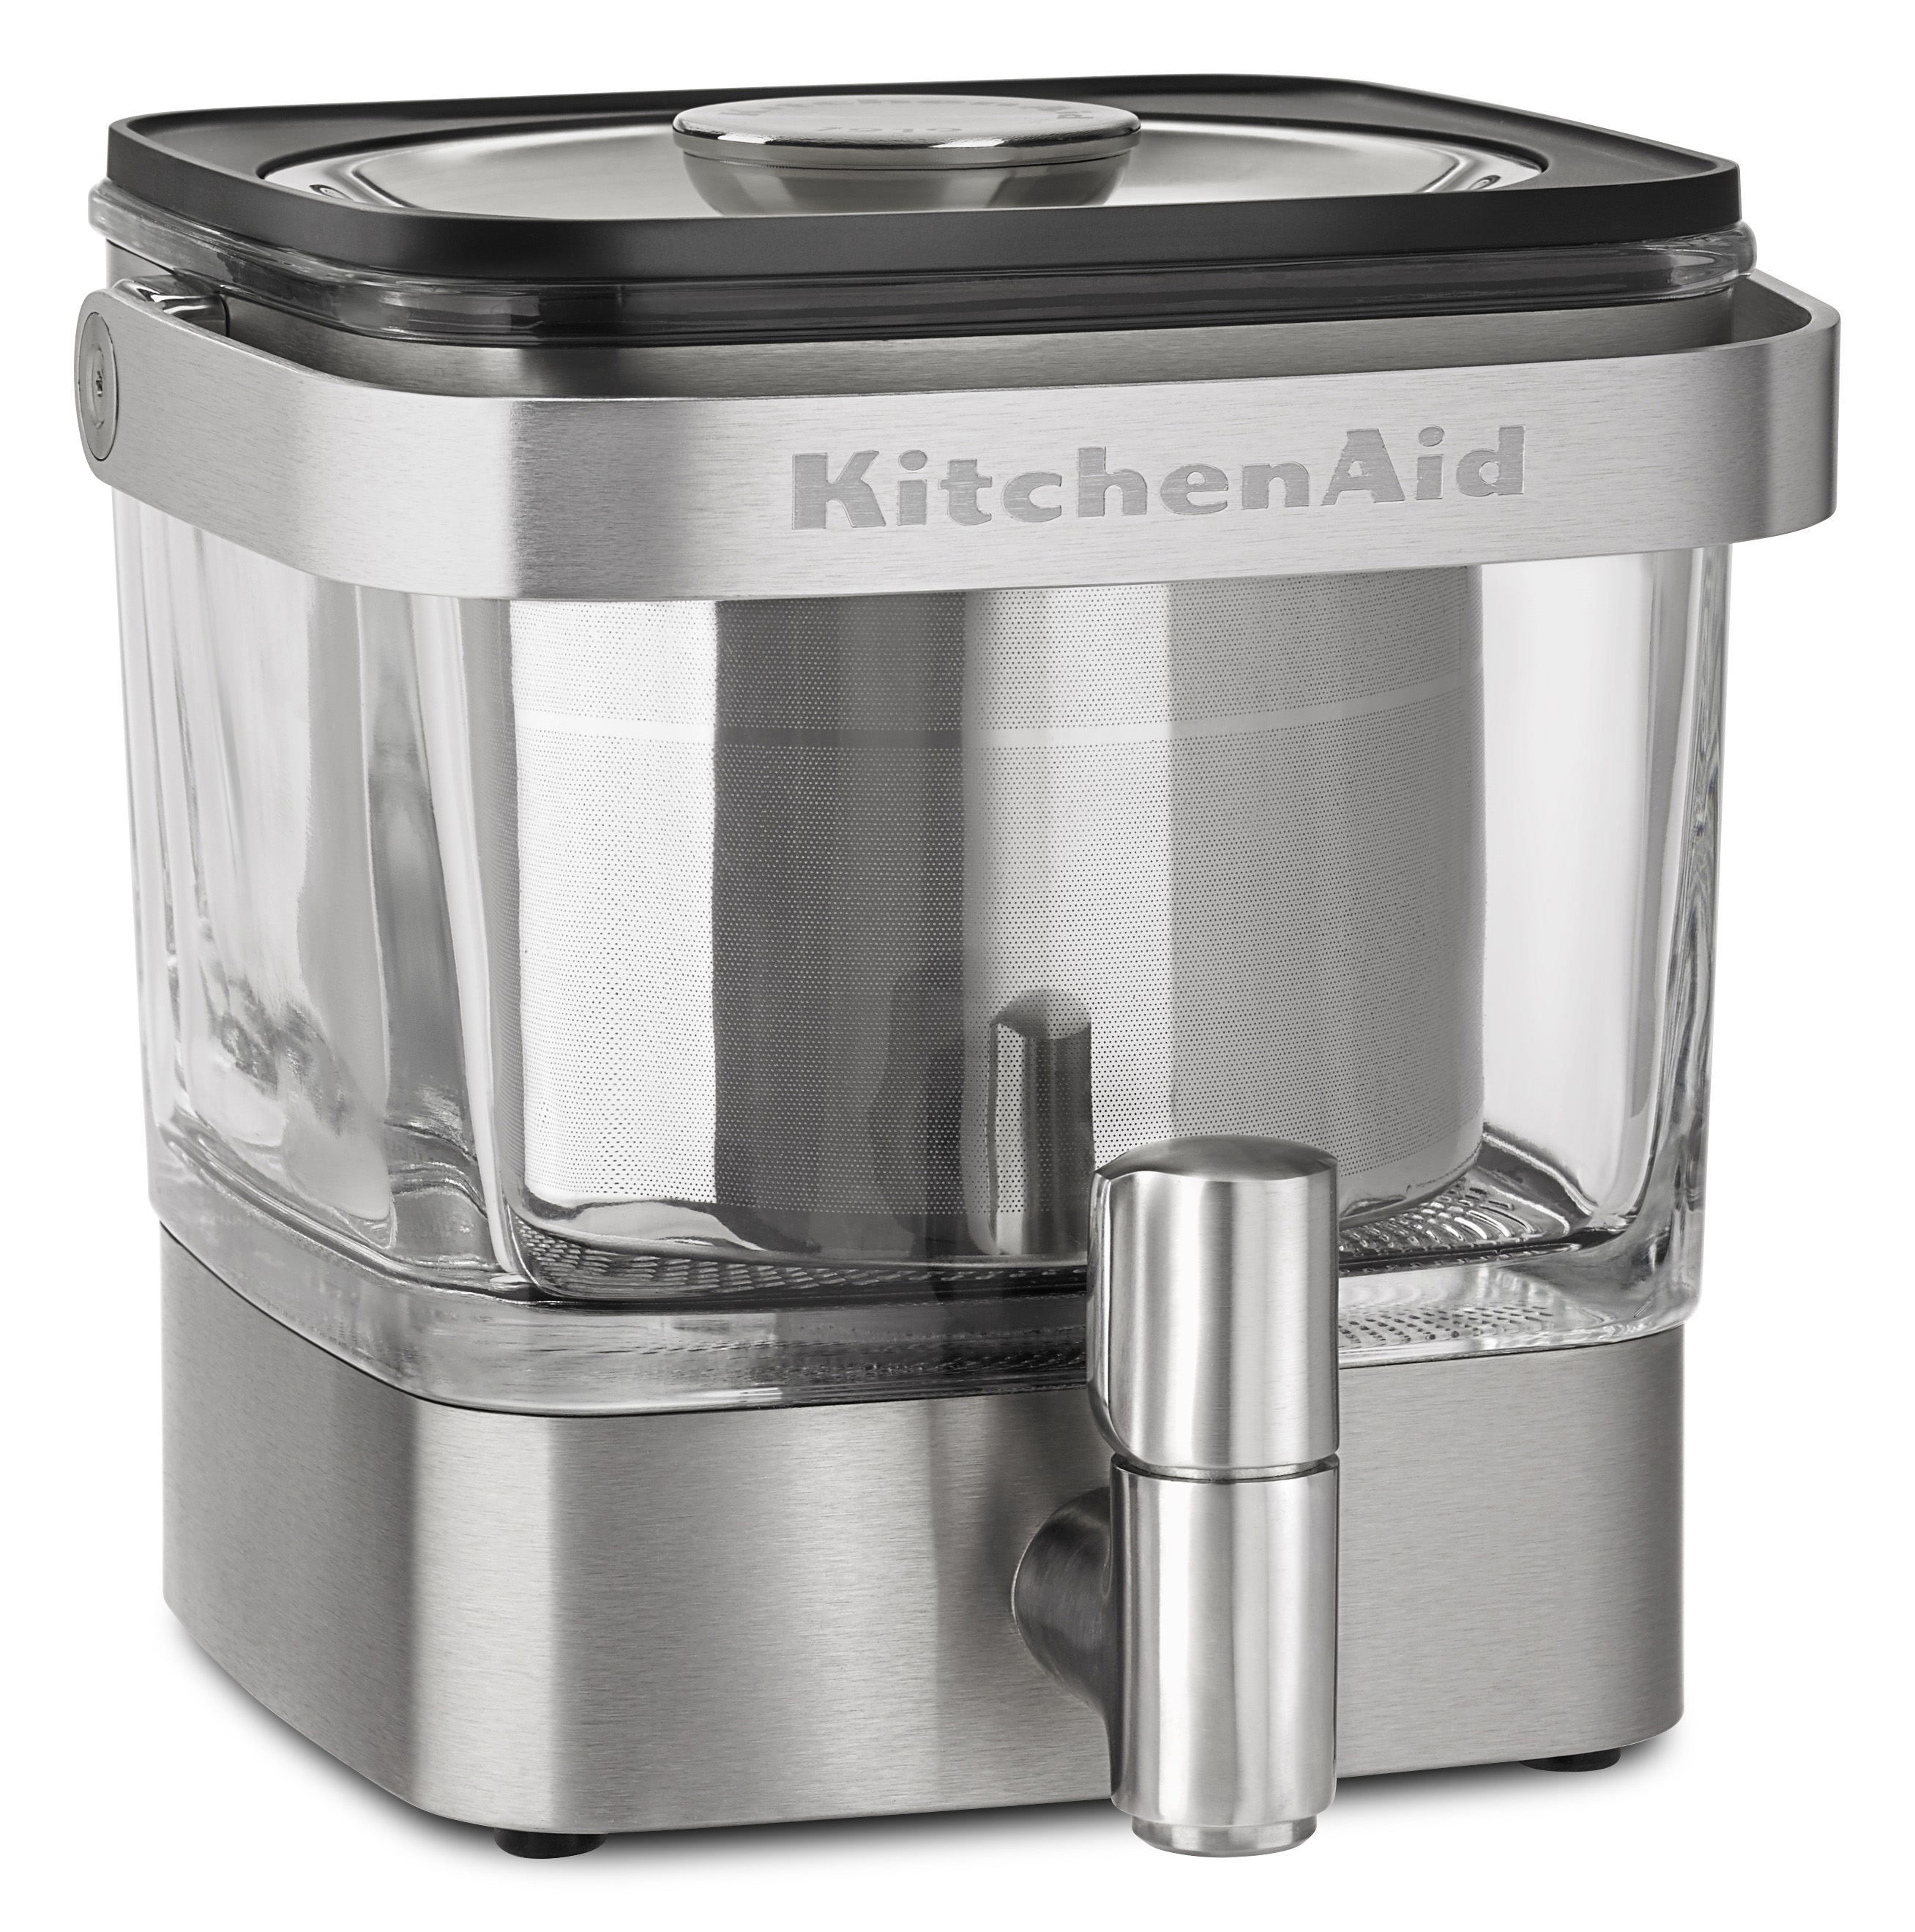 Kitchenaid Coffee Maker New : New Kitchenaid Cold Brew Coffee Maker Makes Home Brewing A Breeze